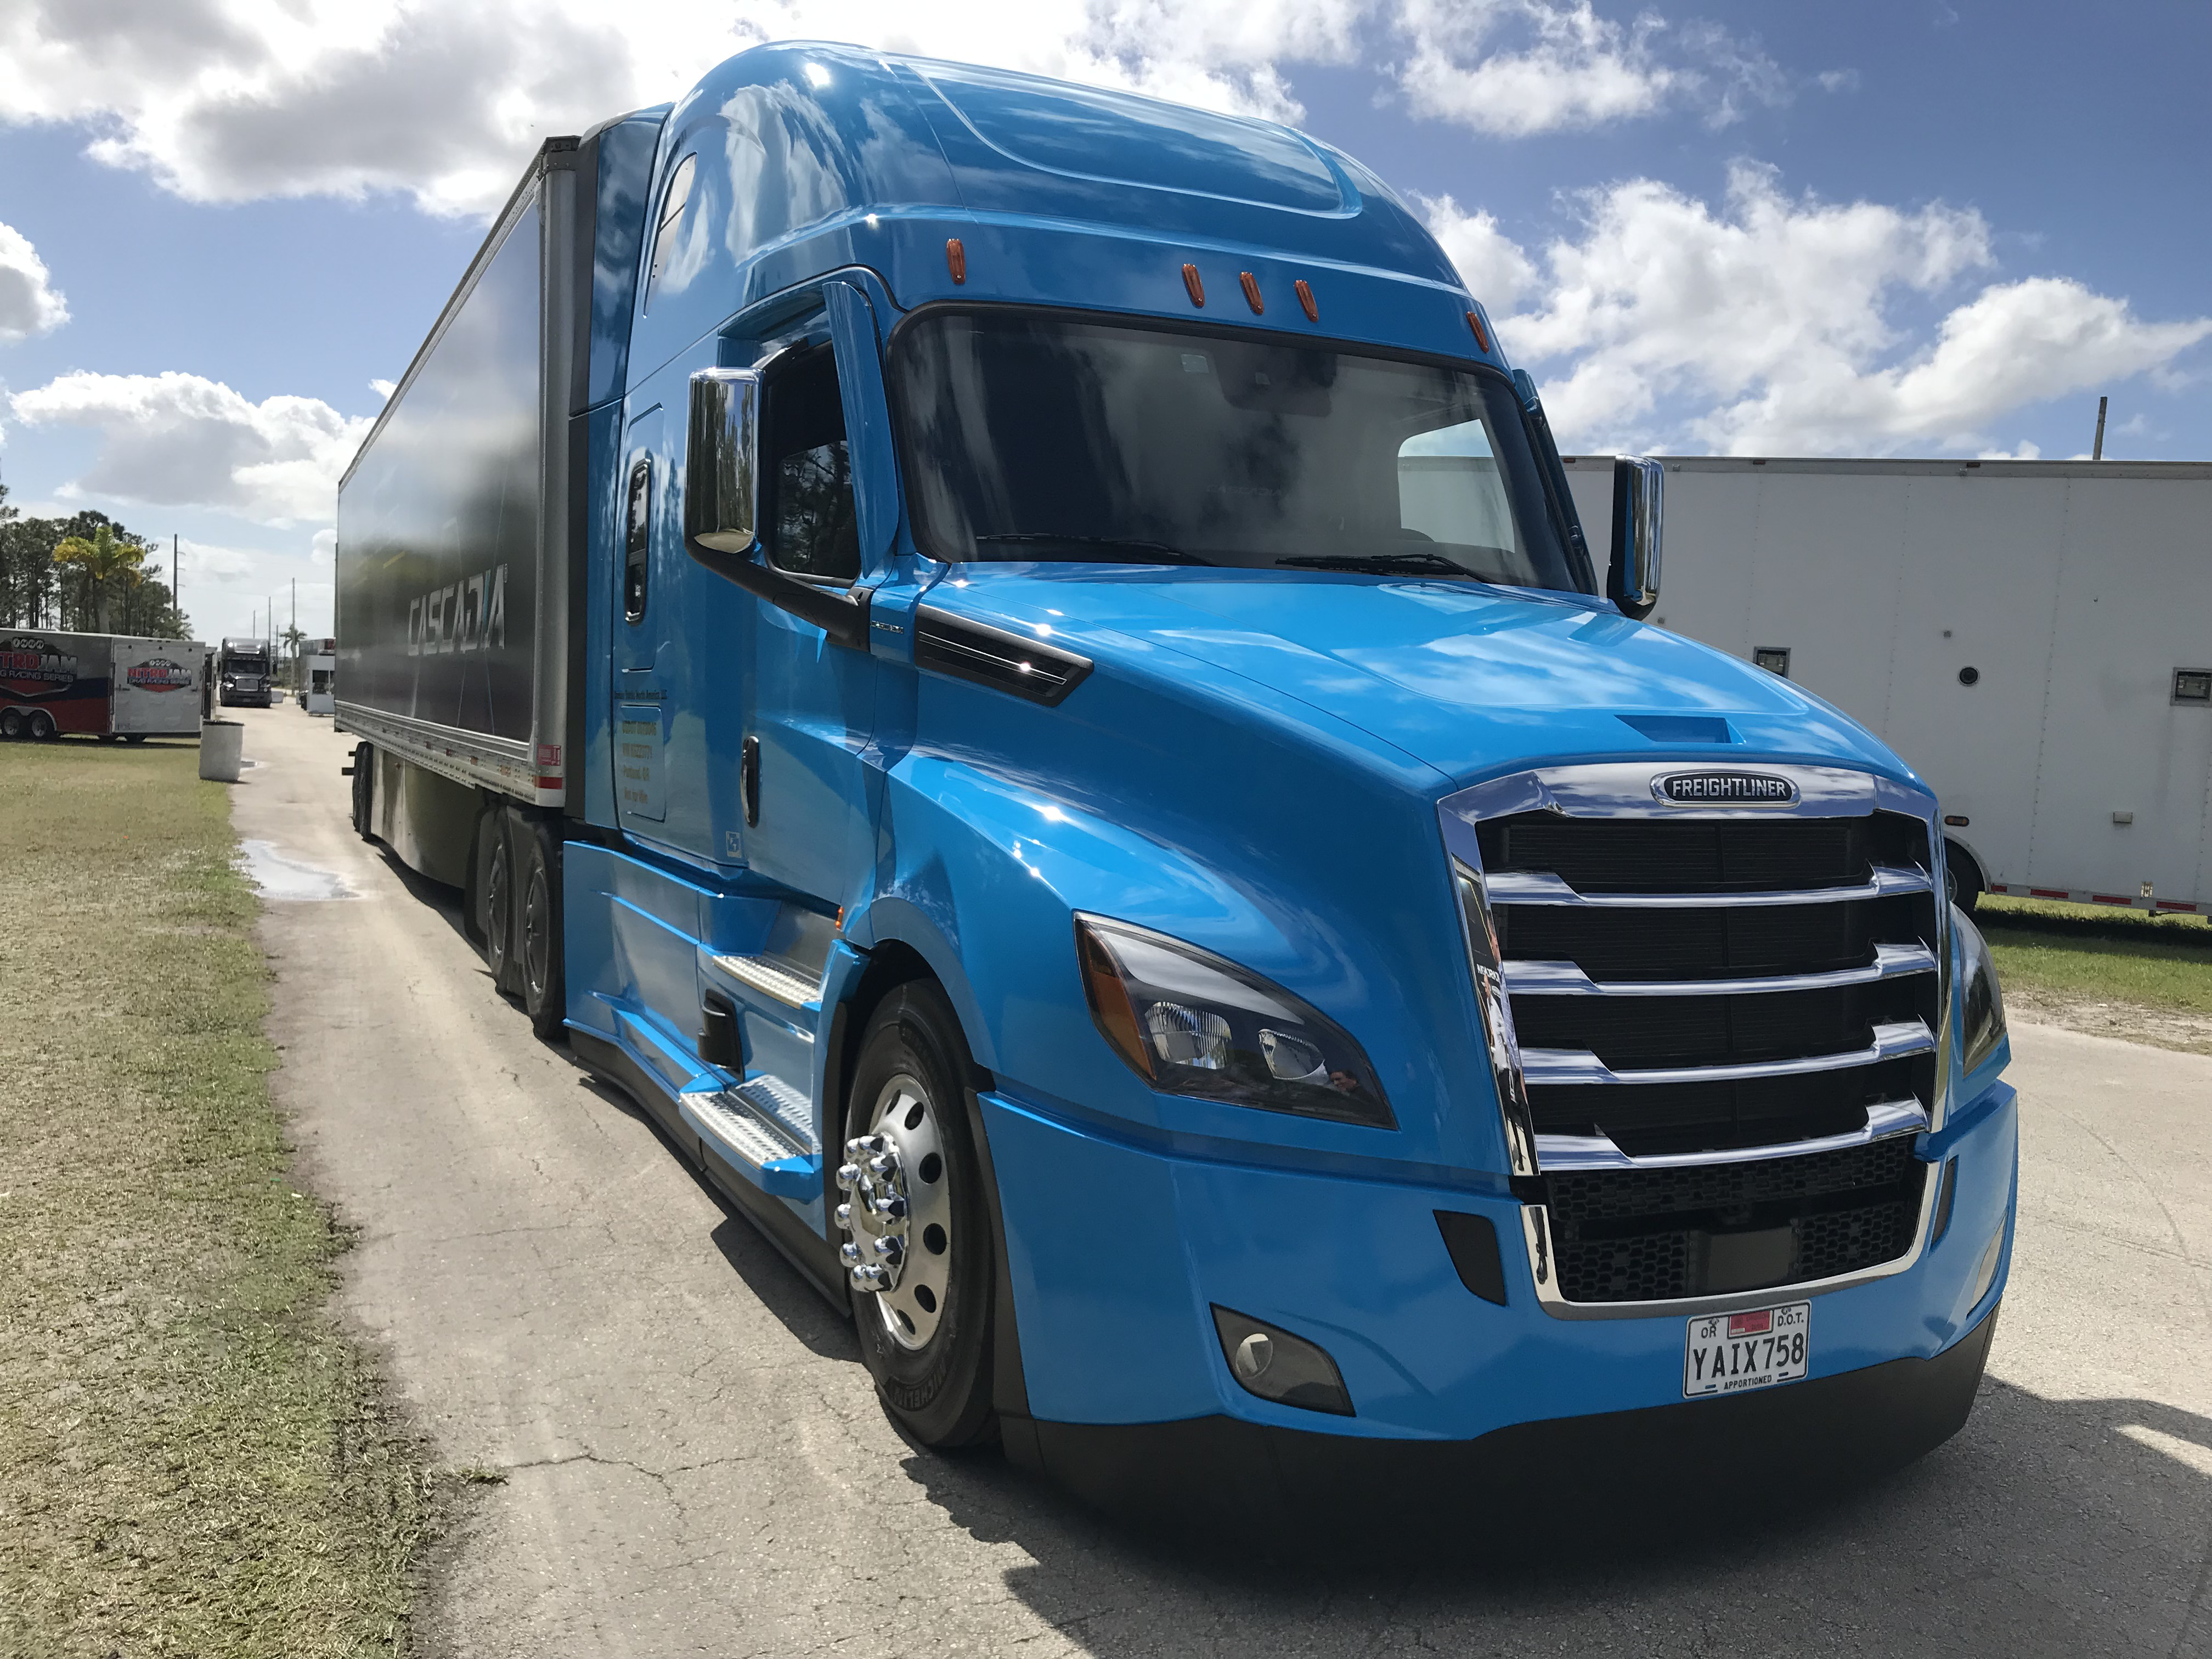 Freightliner Cascadia parked during test drive